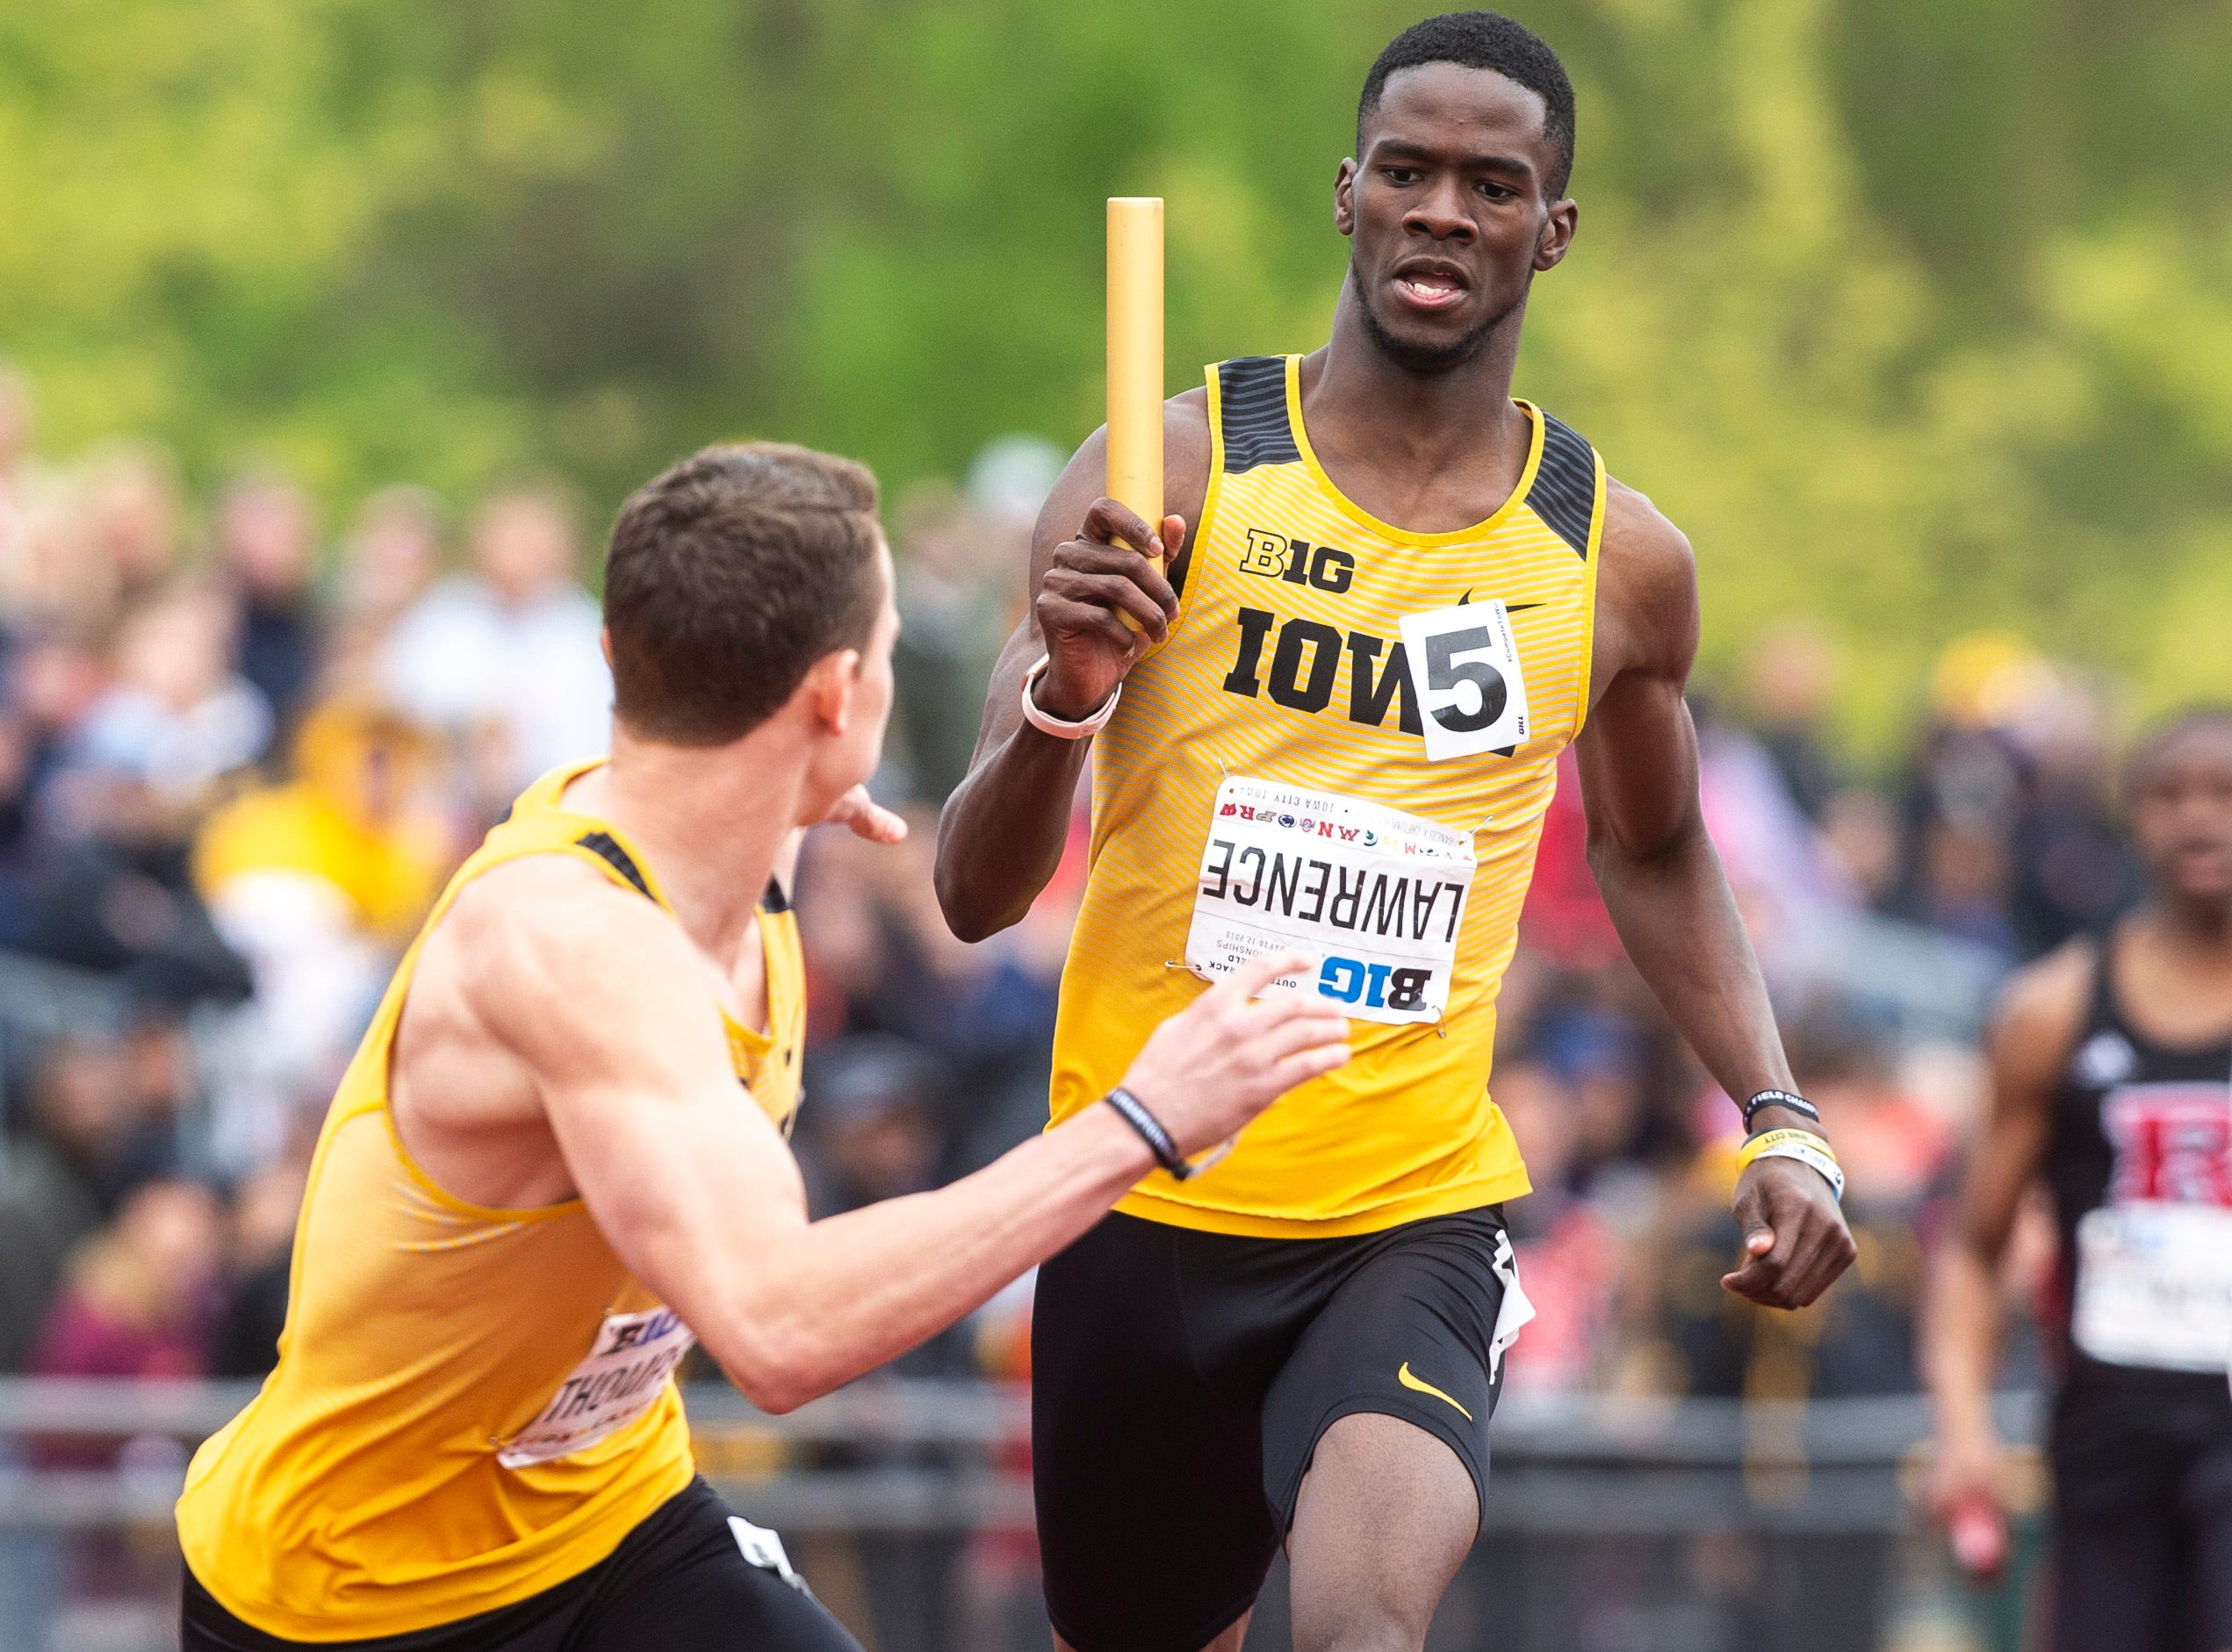 Iowa's Wayne Lawrence Jr. gives a handoff to teammate Chris Thompson, left, while they compete in the 4x400 meter relay during the final day of Big Ten track and field outdoor championships, Sunday, May 12, 2019, at Francis X. Cretzmeyer Track on the University of Iowa campus in Iowa City, Iowa. The Hawkeyes won, with a time of 3:07.36.